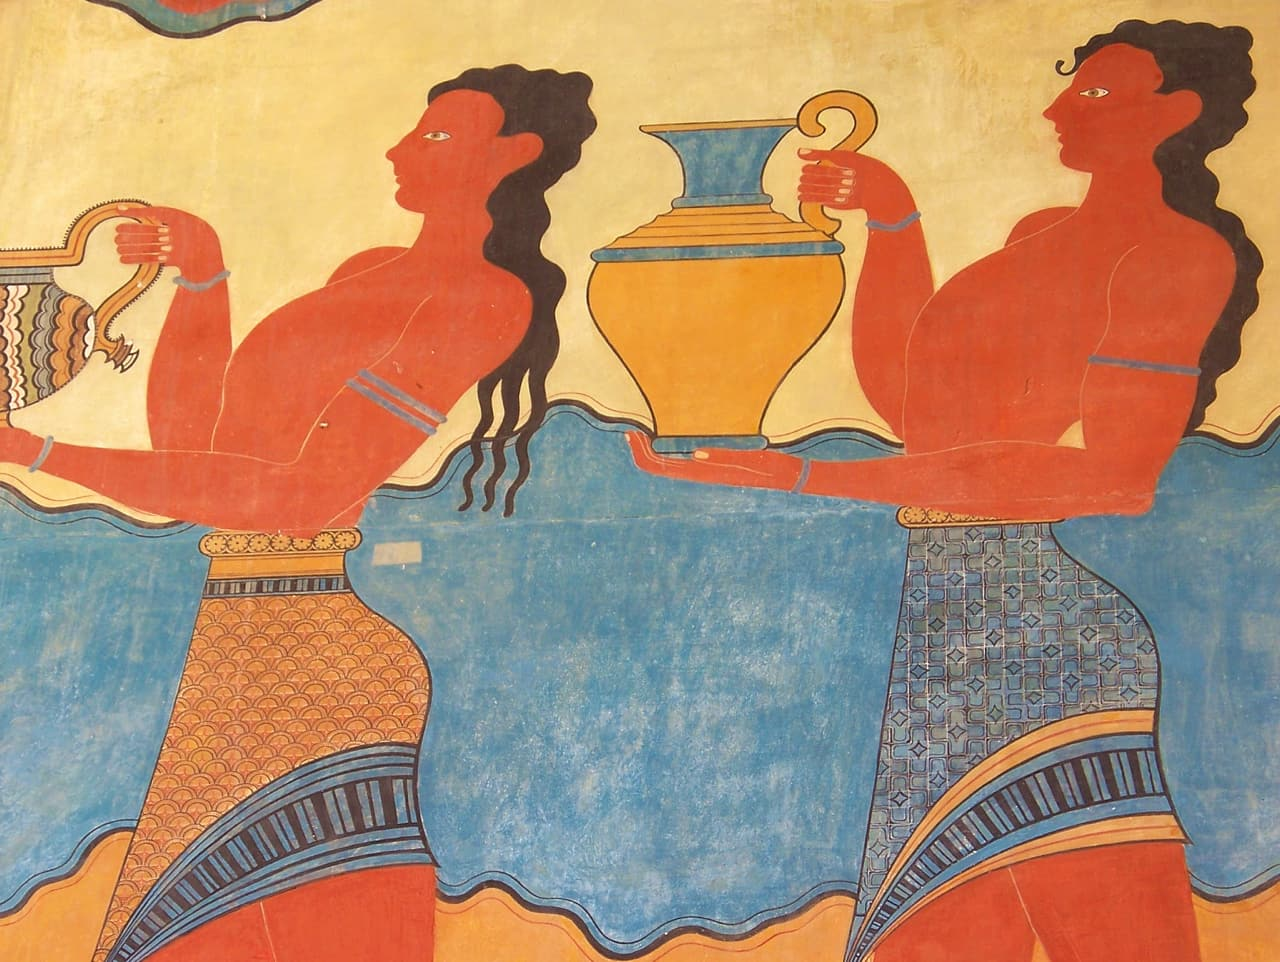 Knossos, the Capital of Minoan Civilization Still Has More Treasures to Reveal